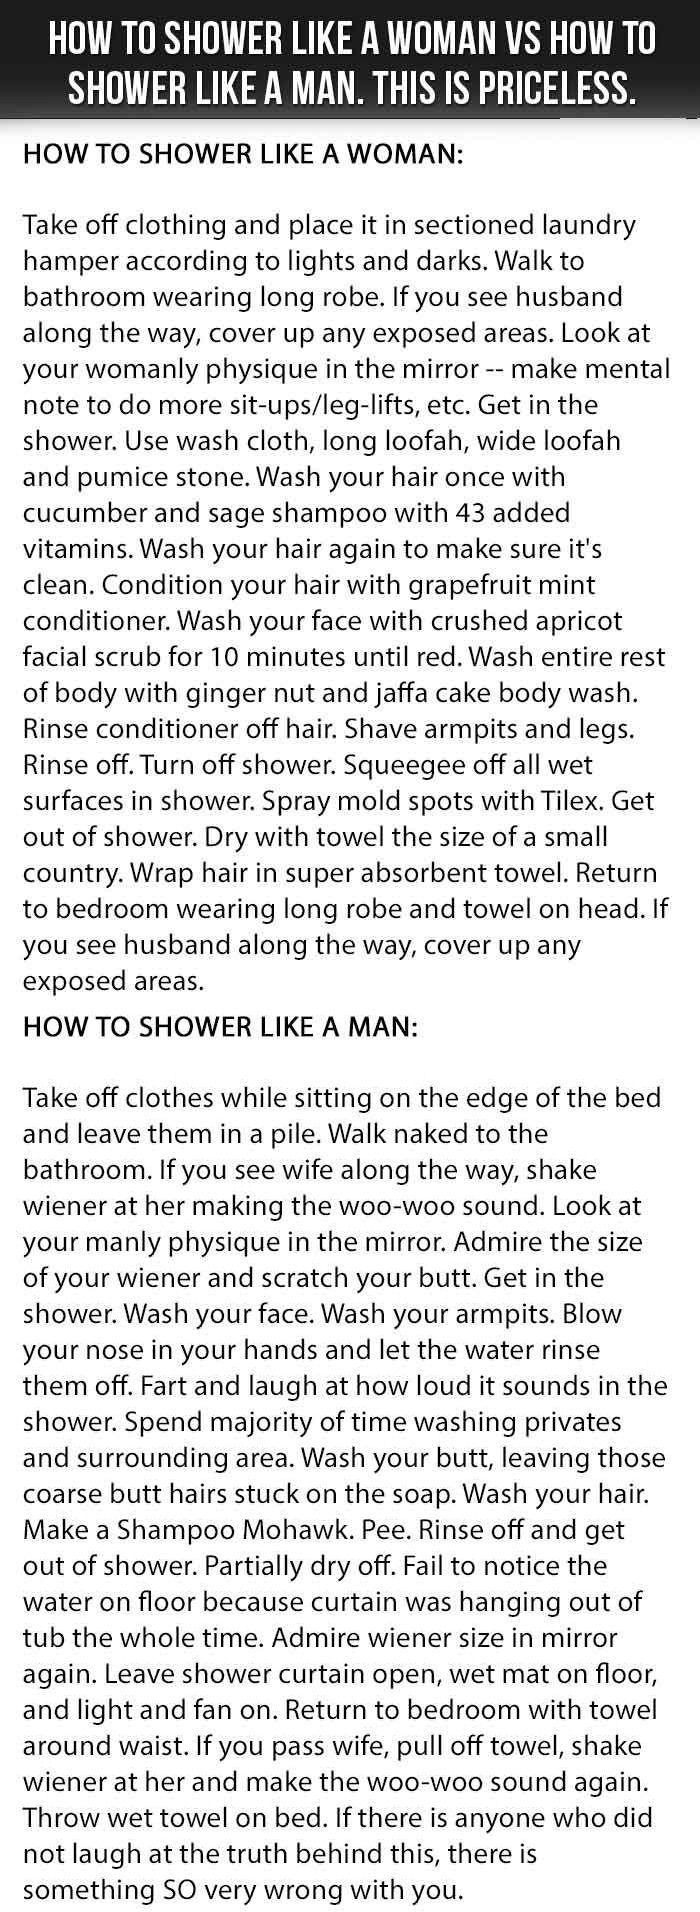 How To Shower Like A Woman Vs How To Shower Like A Man This Is Priceless